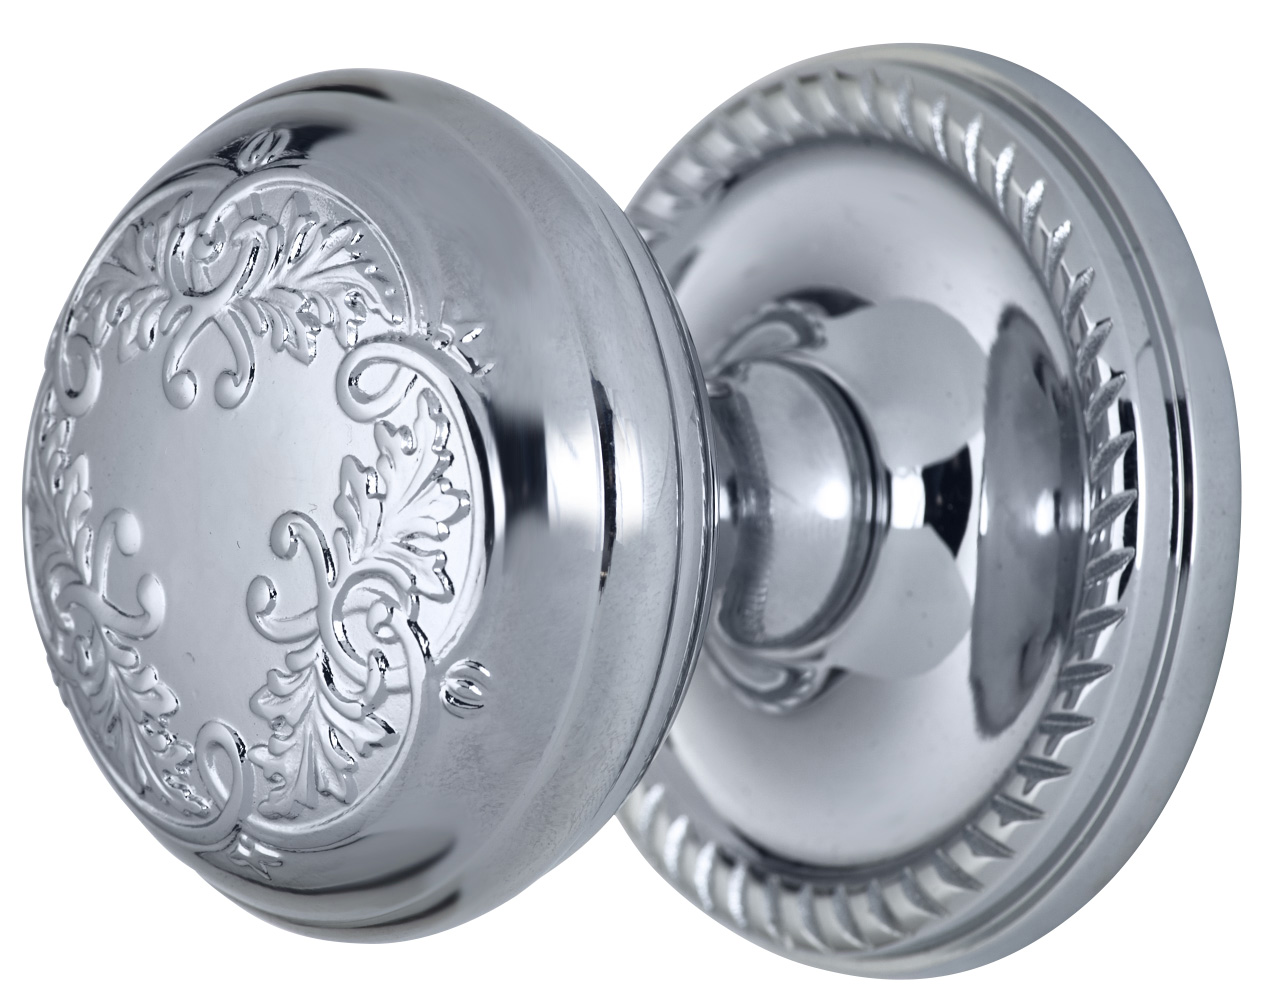 2 Inch Floral Leaf Knob With Roped Rosette (Polished Chrome Finish)